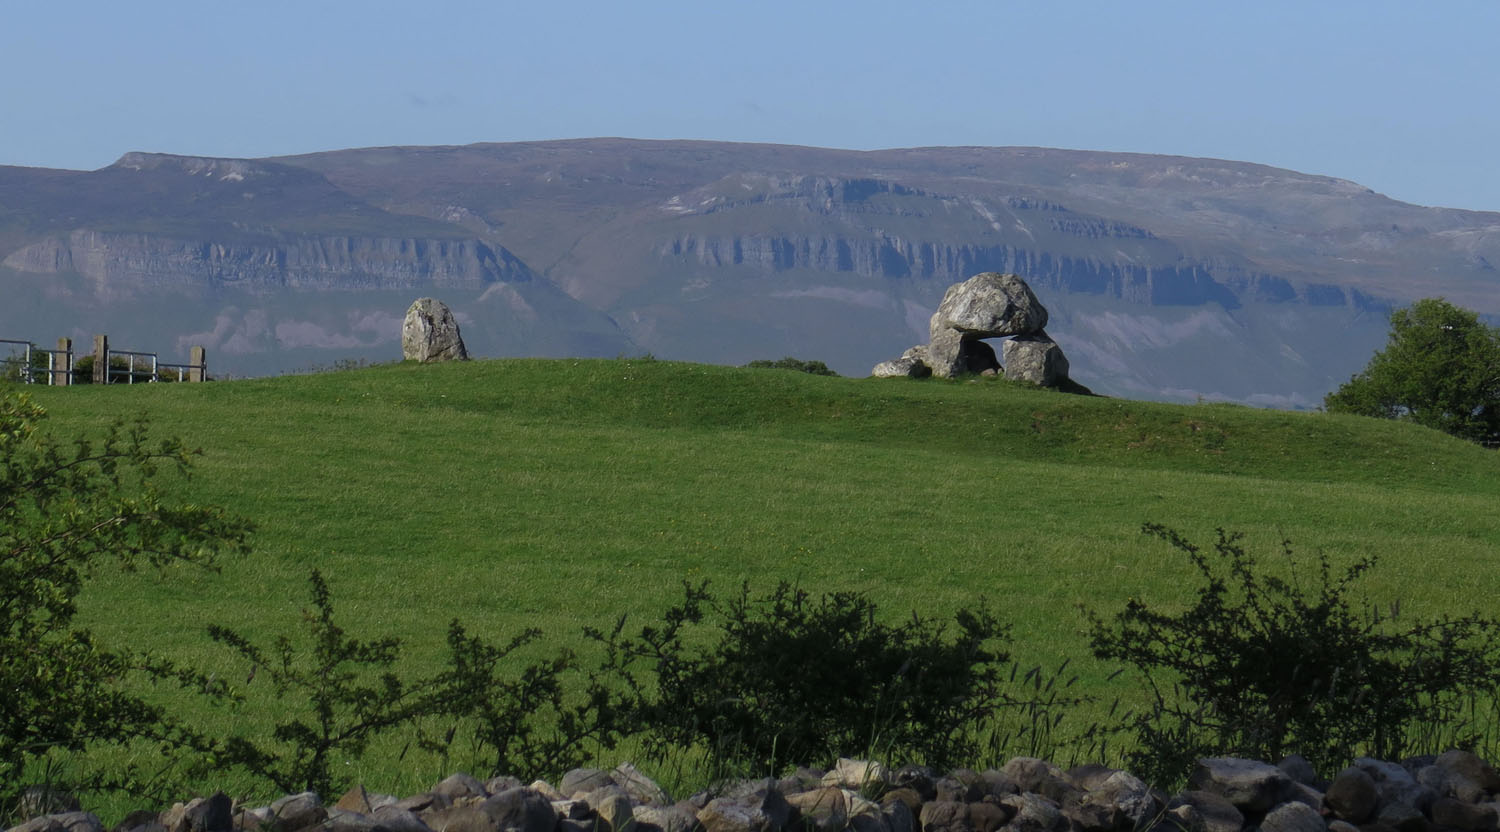 Ireland-Sights-And-Scenery-Carrowmore-Megalithic-Tombs